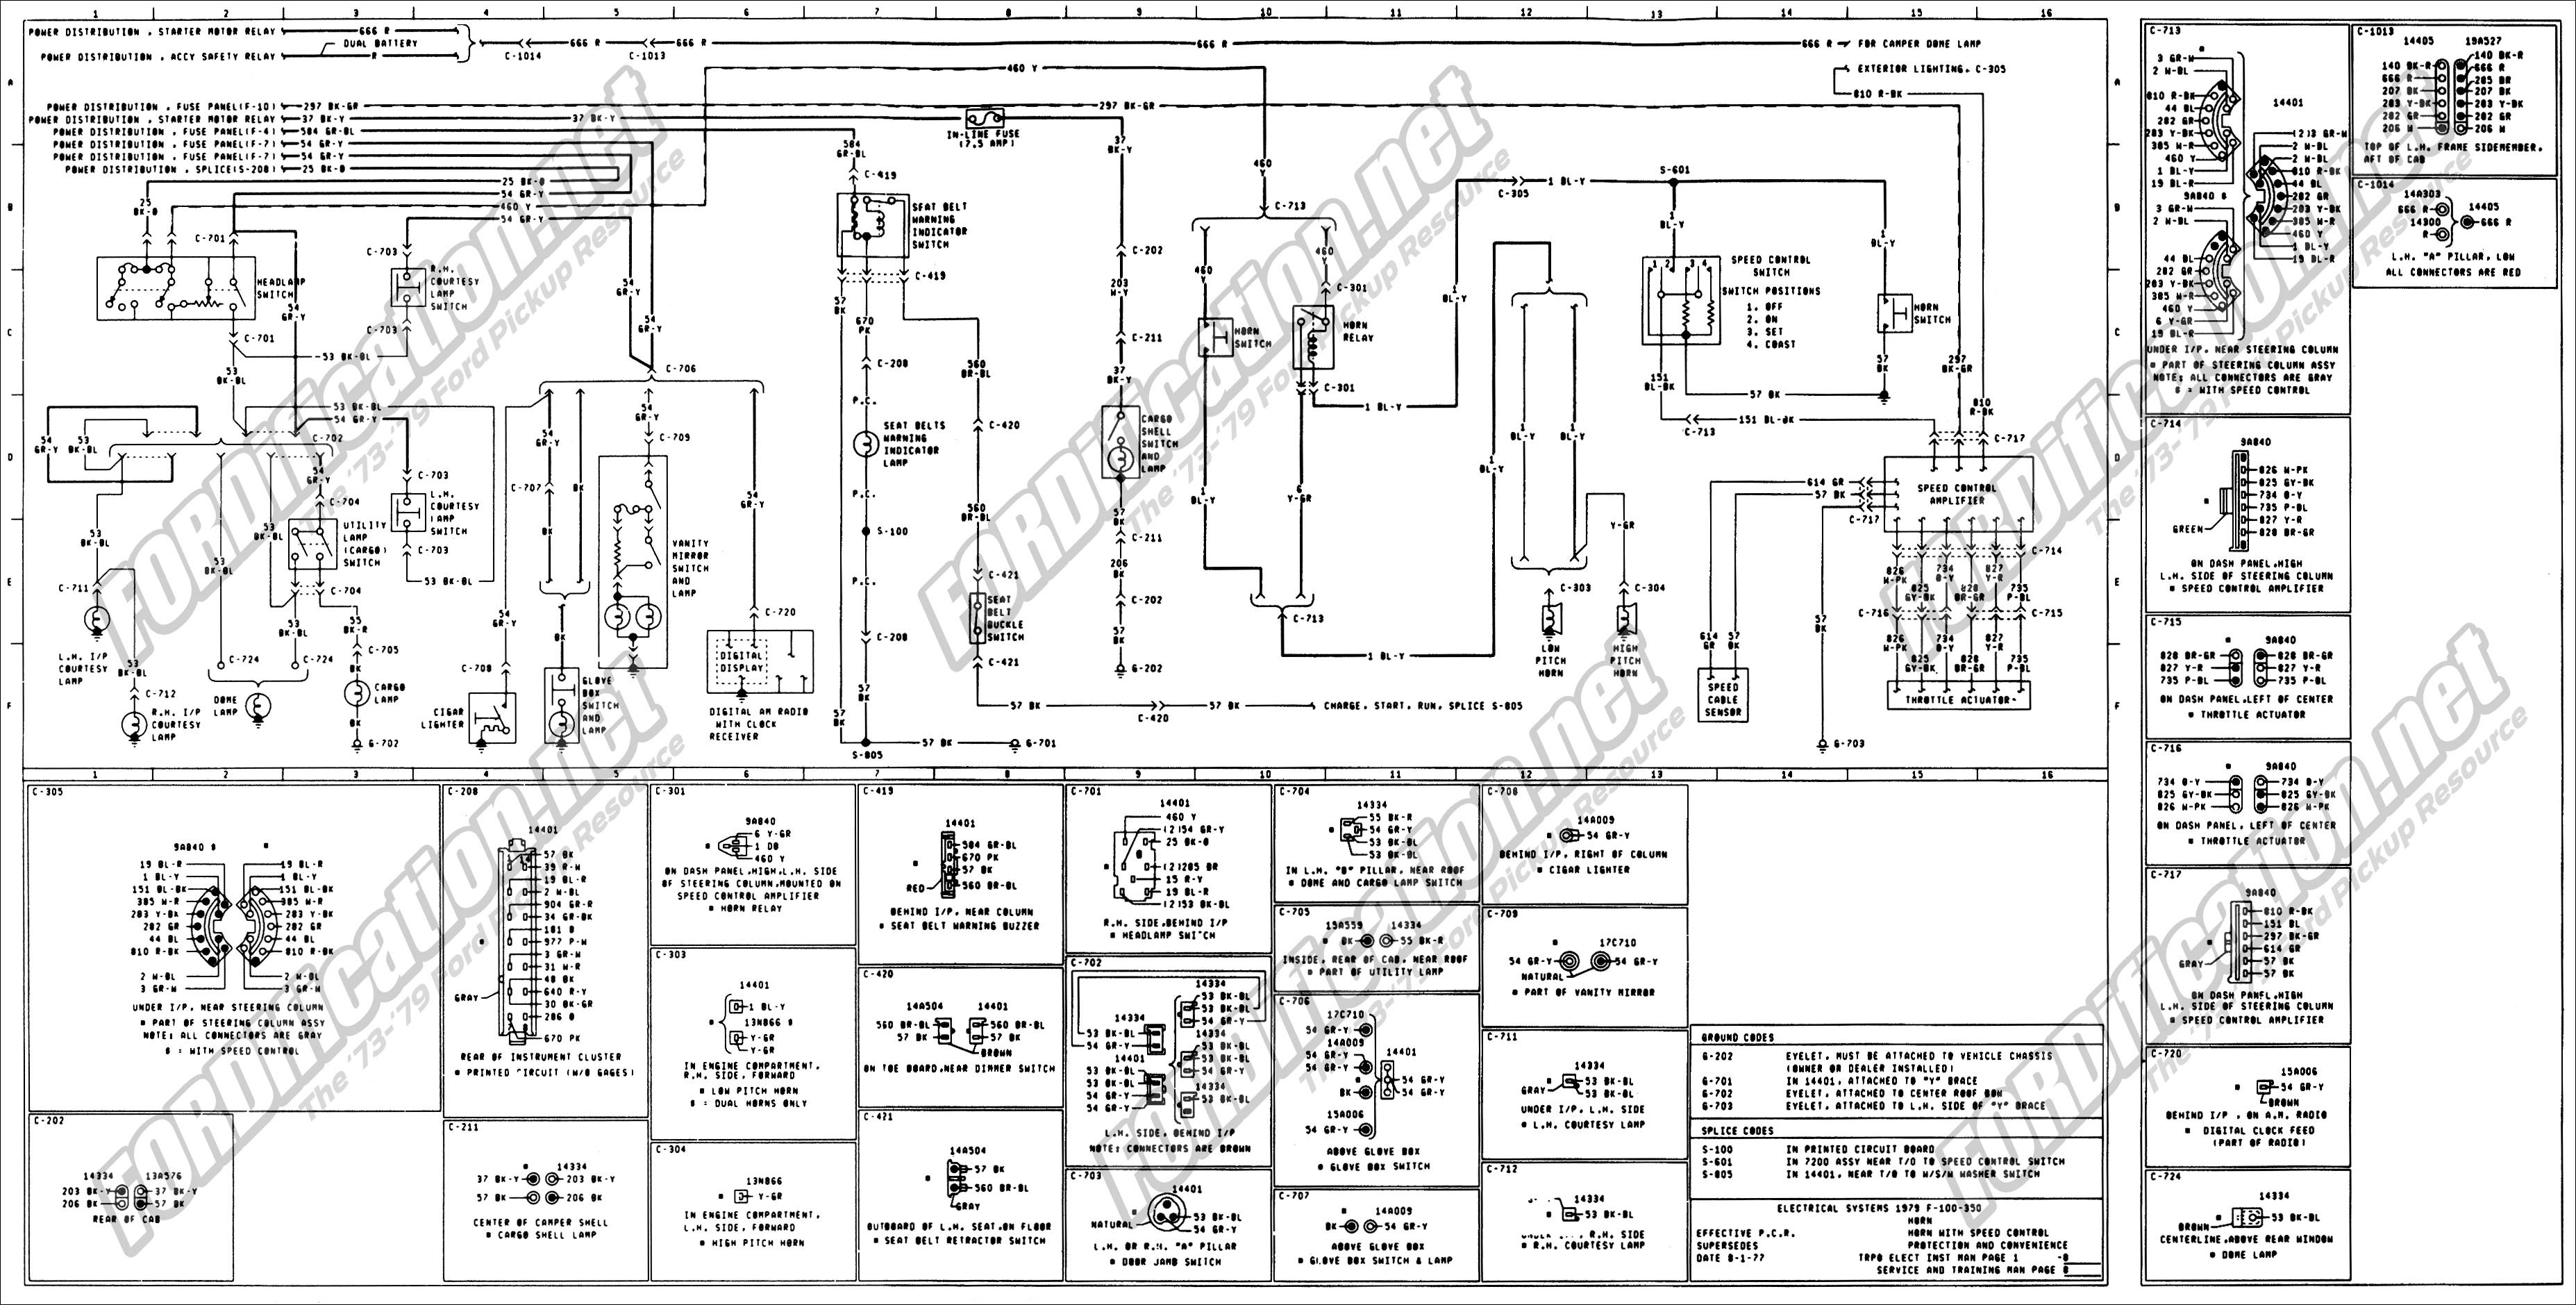 Ford F150 Wiring Diagrams 1973 1979 ford Truck Wiring Diagrams & Schematics fordification Of Ford F150 Wiring Diagrams